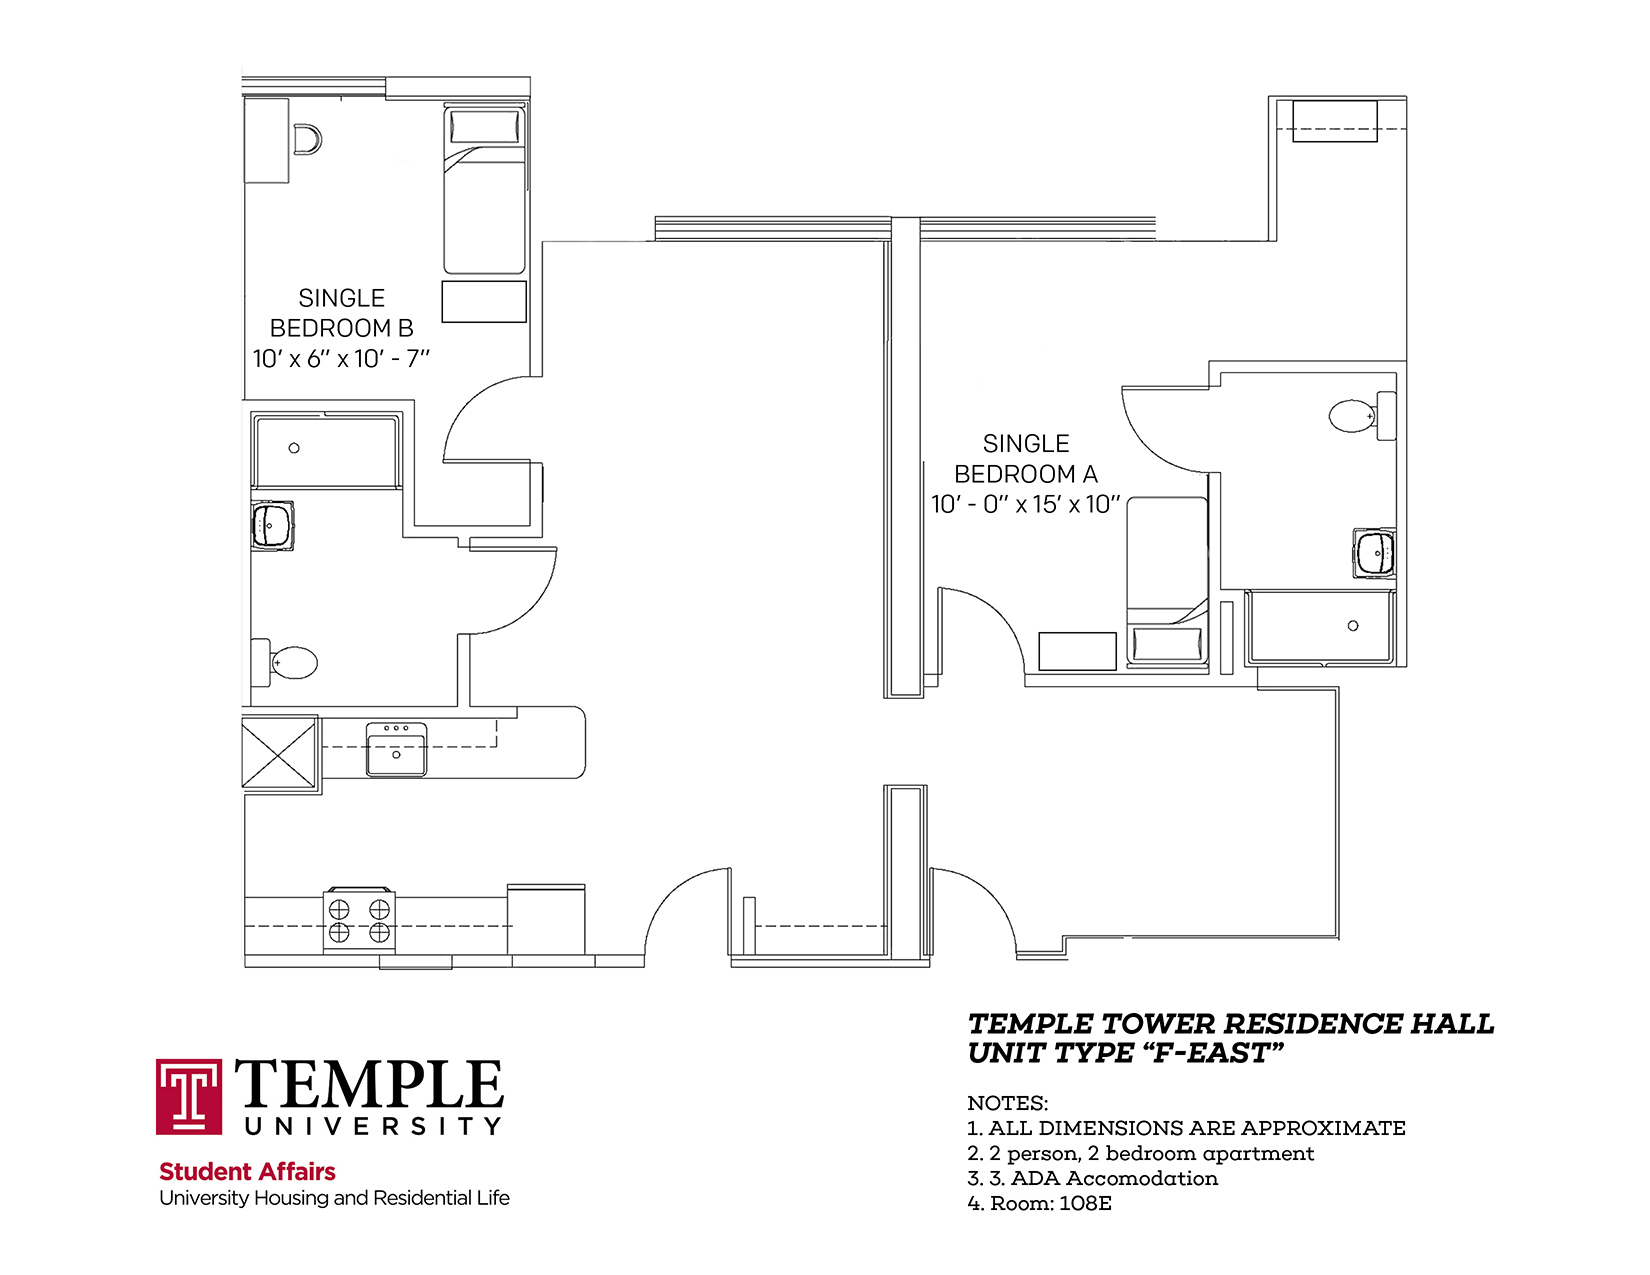 Temple Towers: Unit F East - 2 person, 2 bedroom Apartment